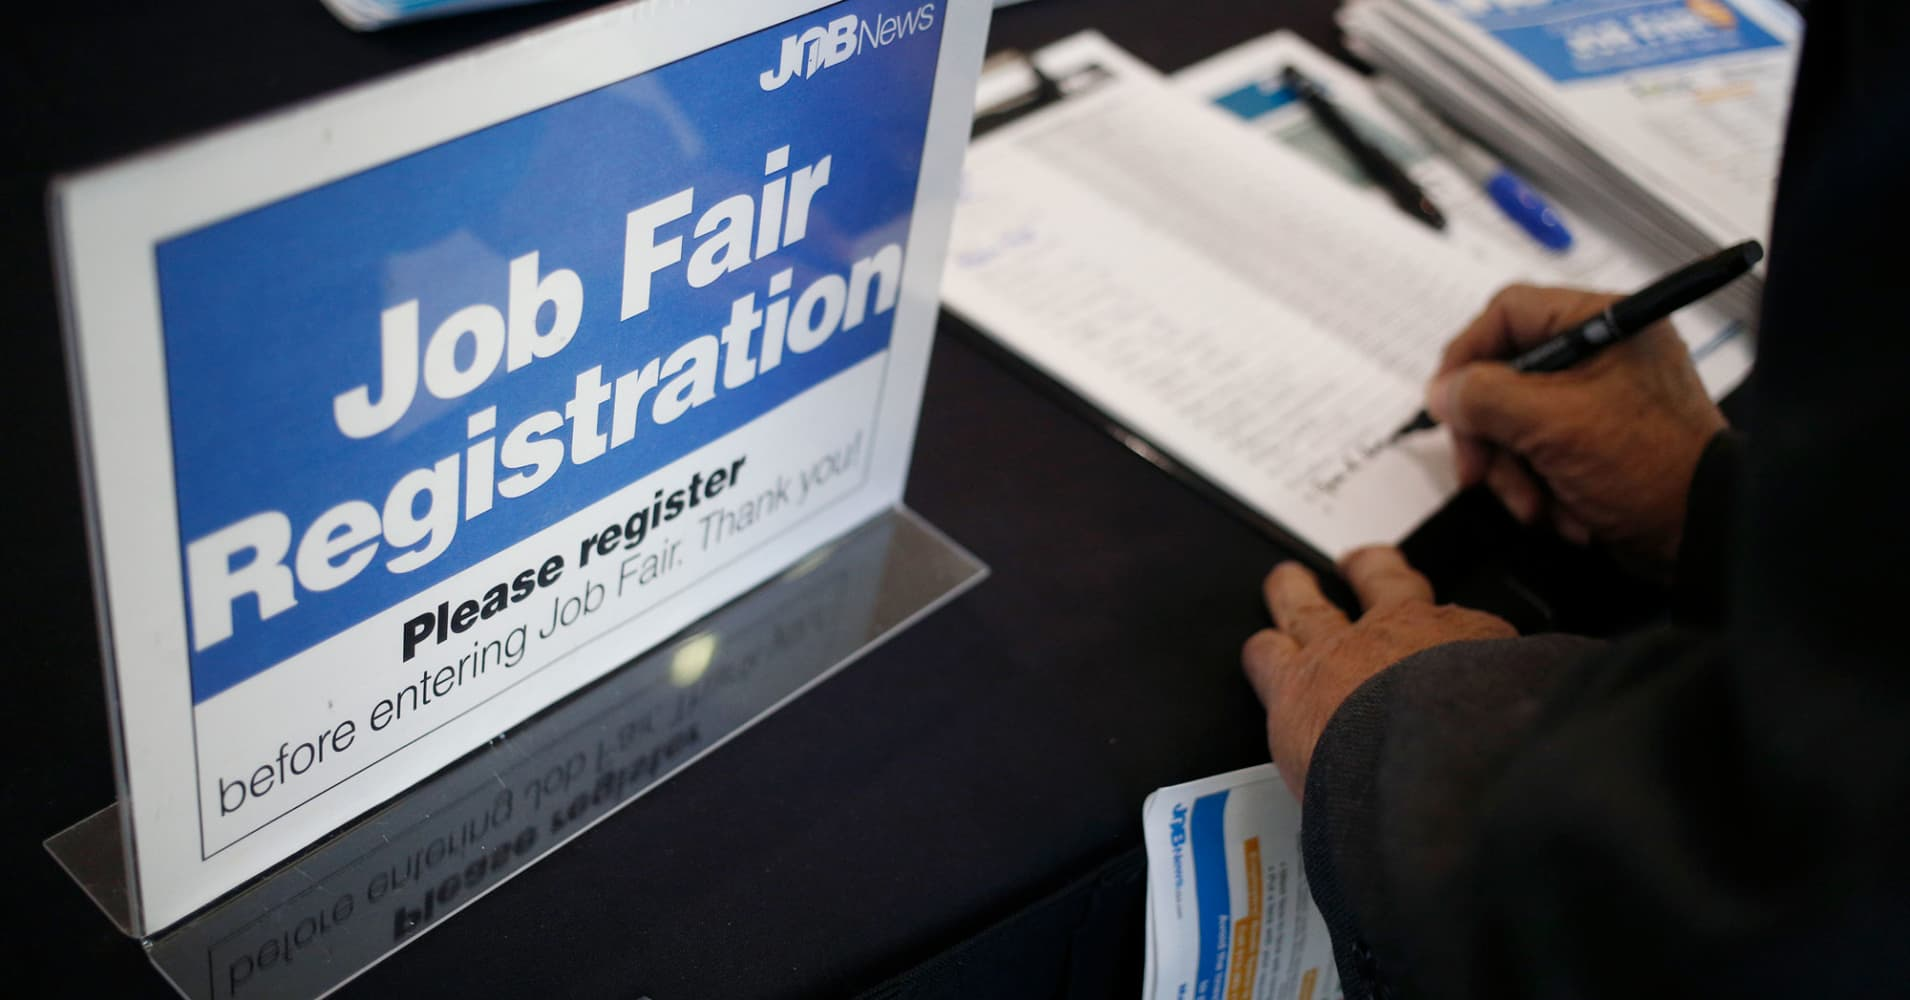 US weekly jobless claims total 248,000 vs 239,000 claims expected